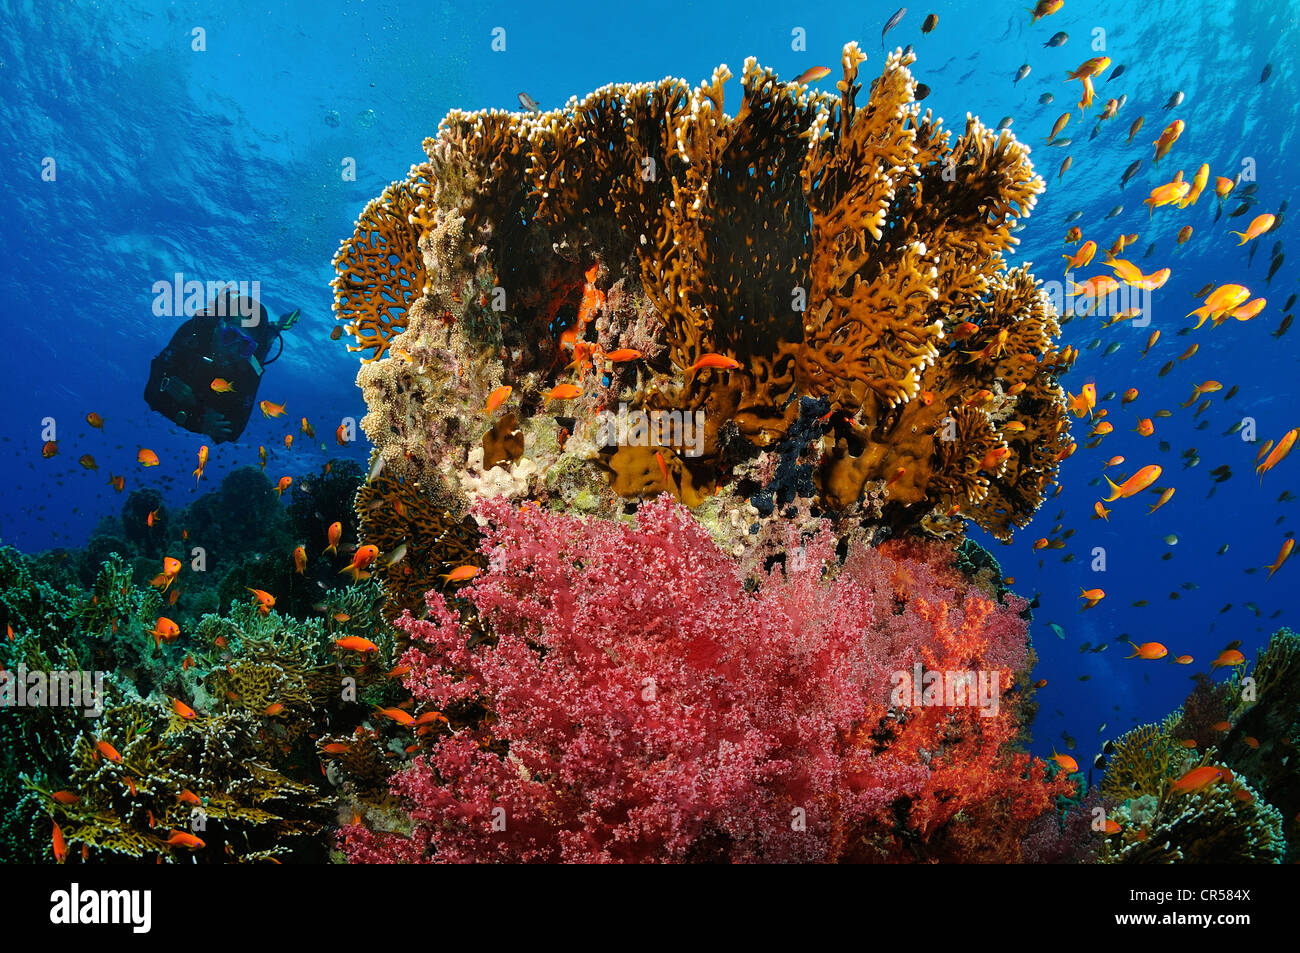 Egypt, Red Sea, coral reef with fire coral and red alcyonarians - Stock Image